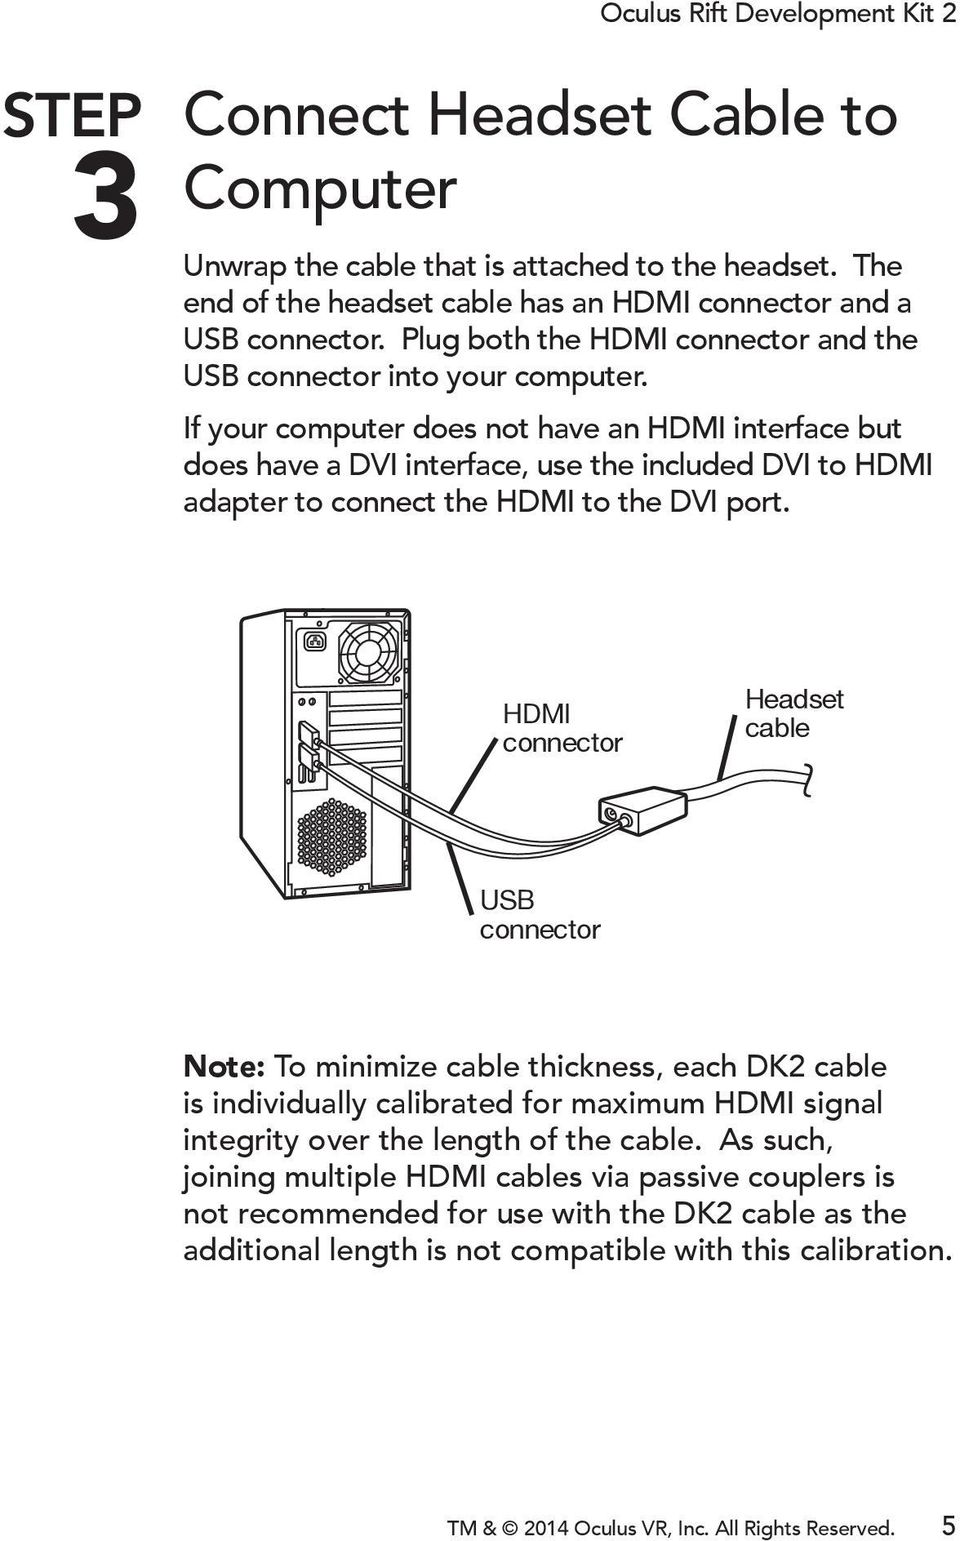 If your computer does not have an HDMI interface but does have a DVI interface, use the included DVI to HDMI adapter to connect the HDMI to the DVI port.